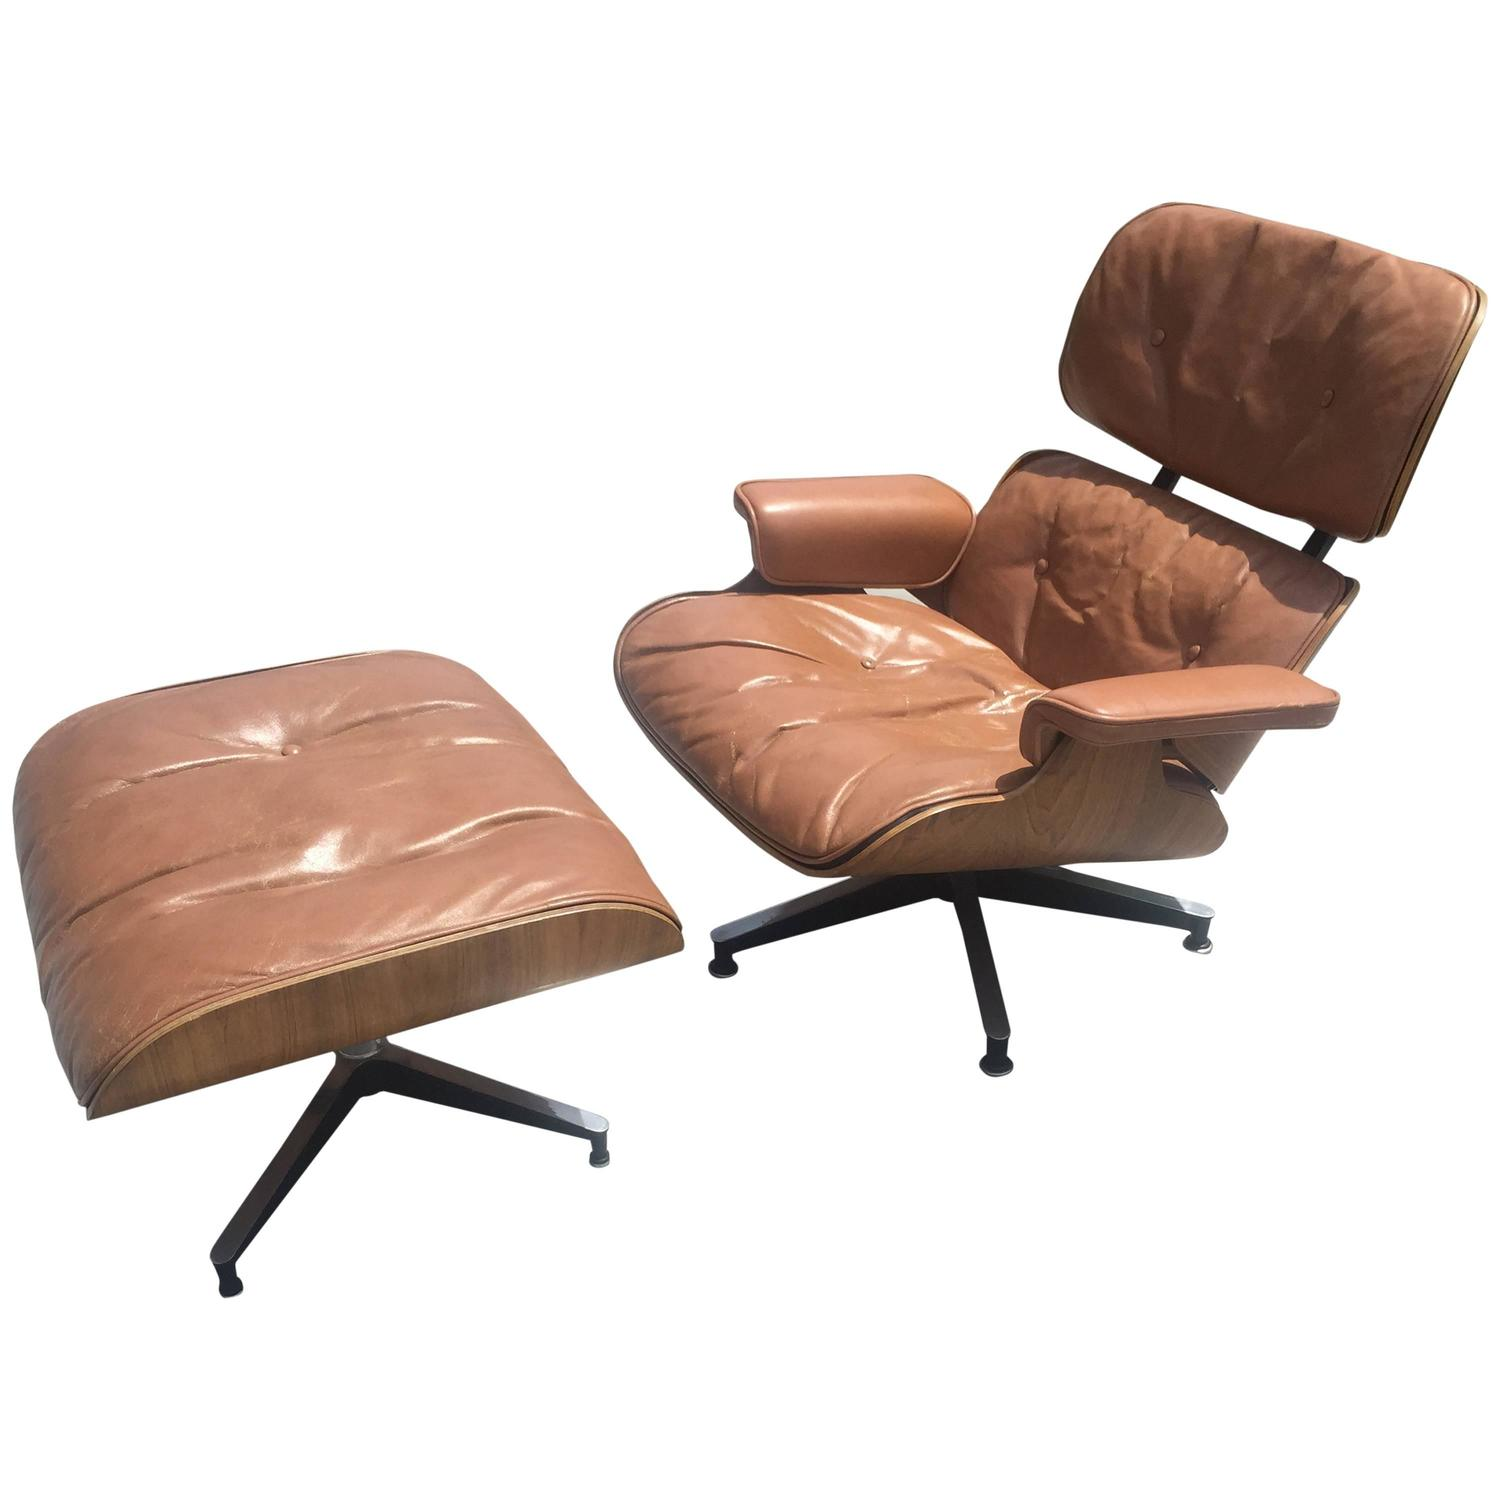 Outstanding Early Eames Lounge And Ottoman For Herman Miller In Original Dailytribune Chair Design For Home Dailytribuneorg